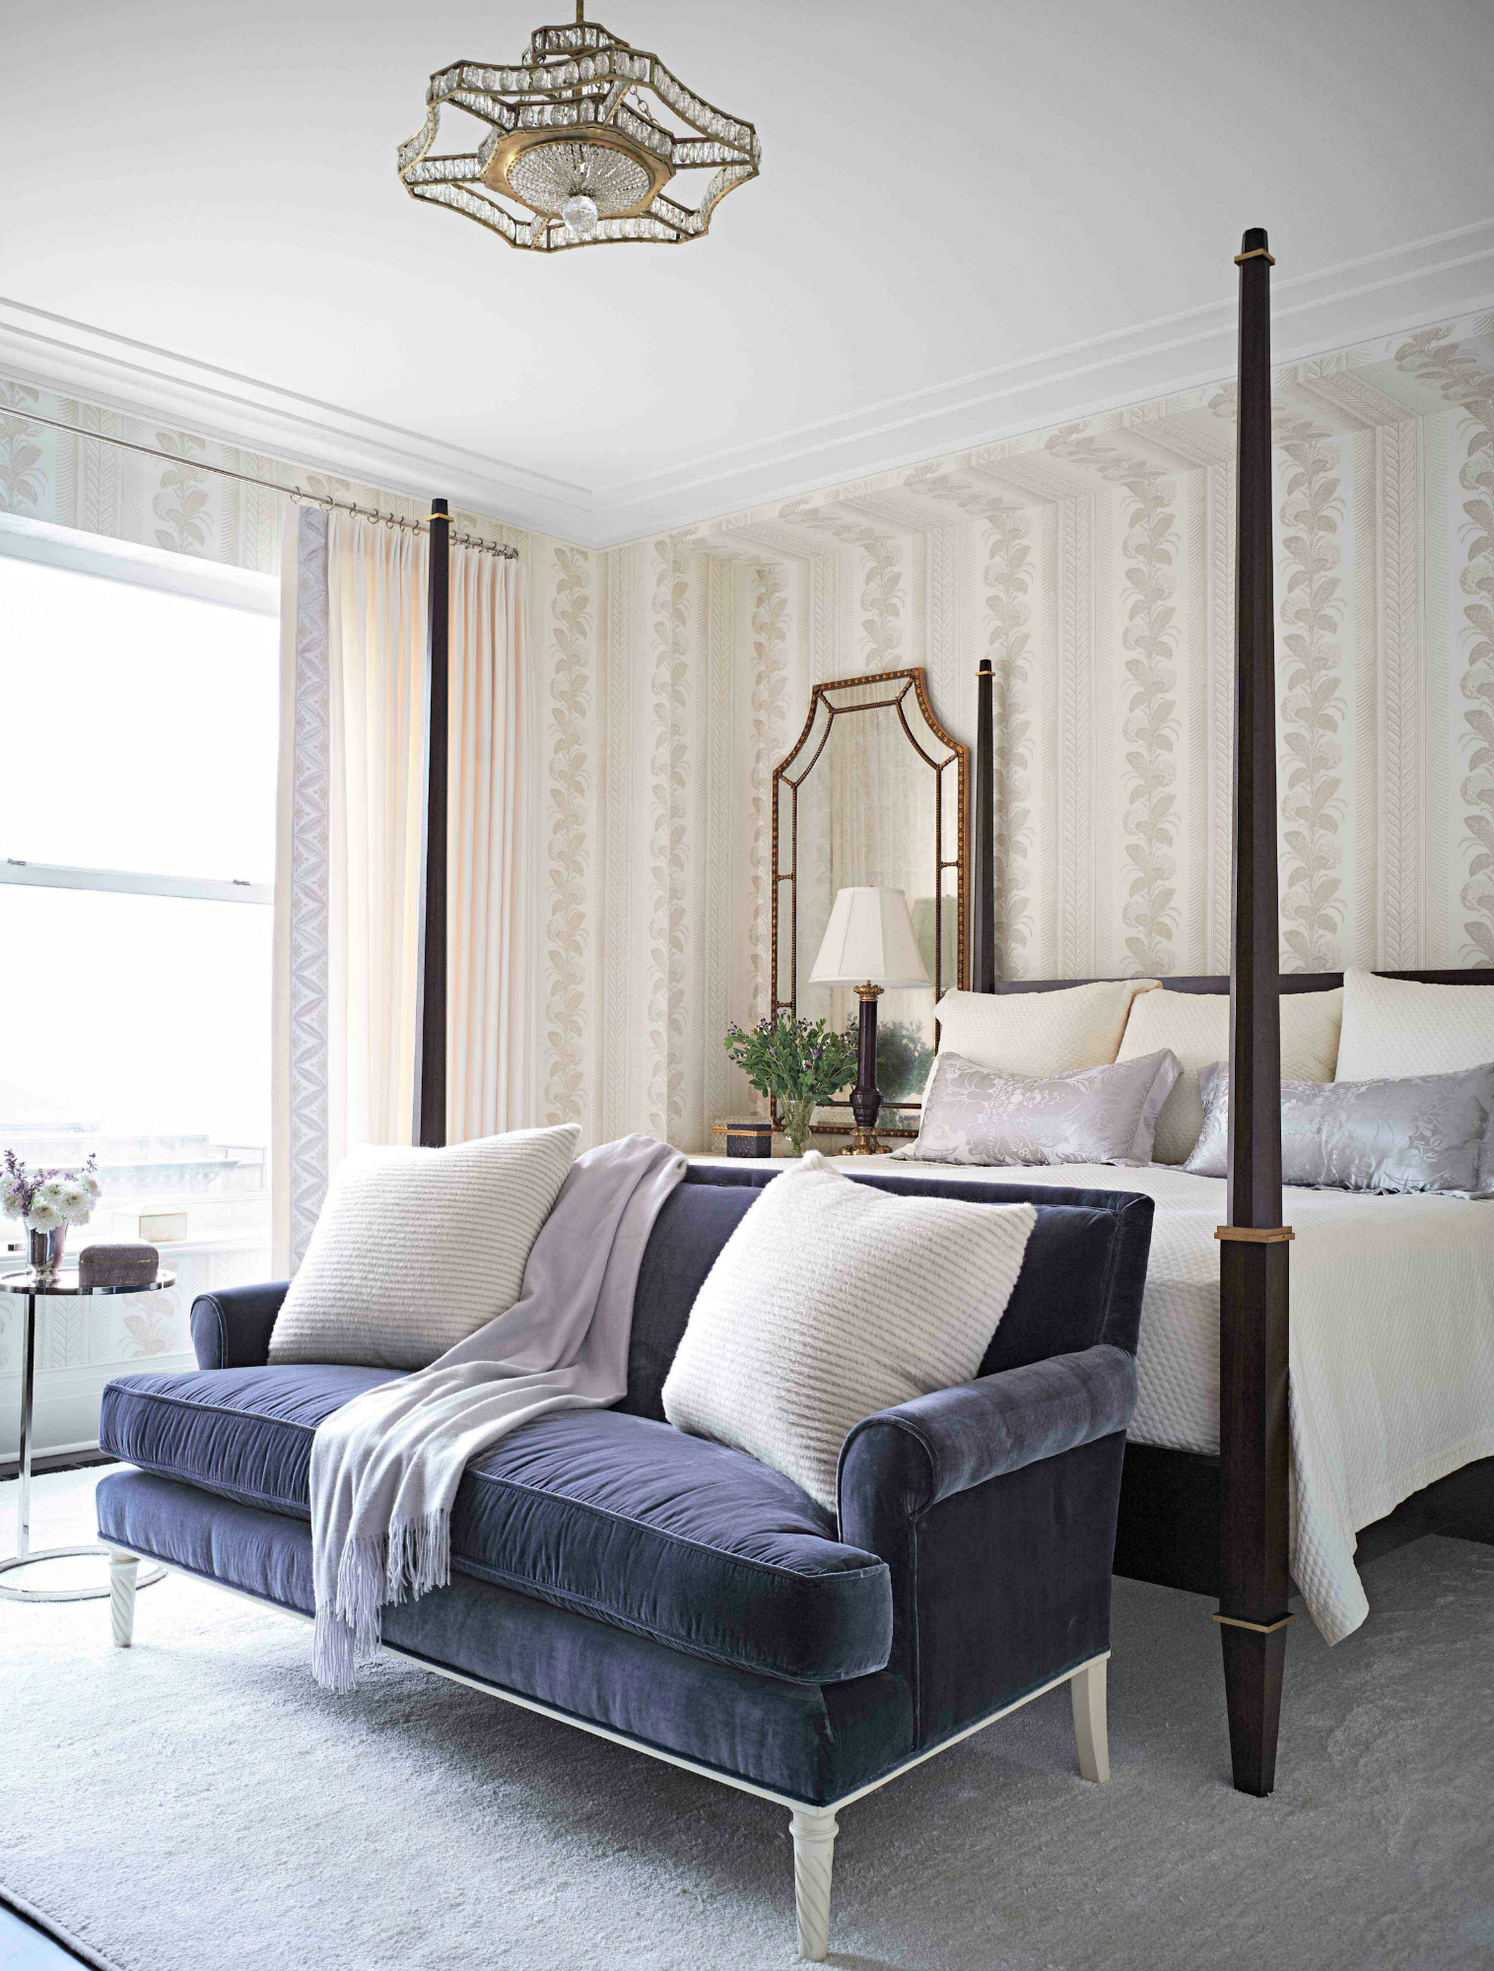 Modern Bedrooms Bedroom decor on a budget, Beautiful